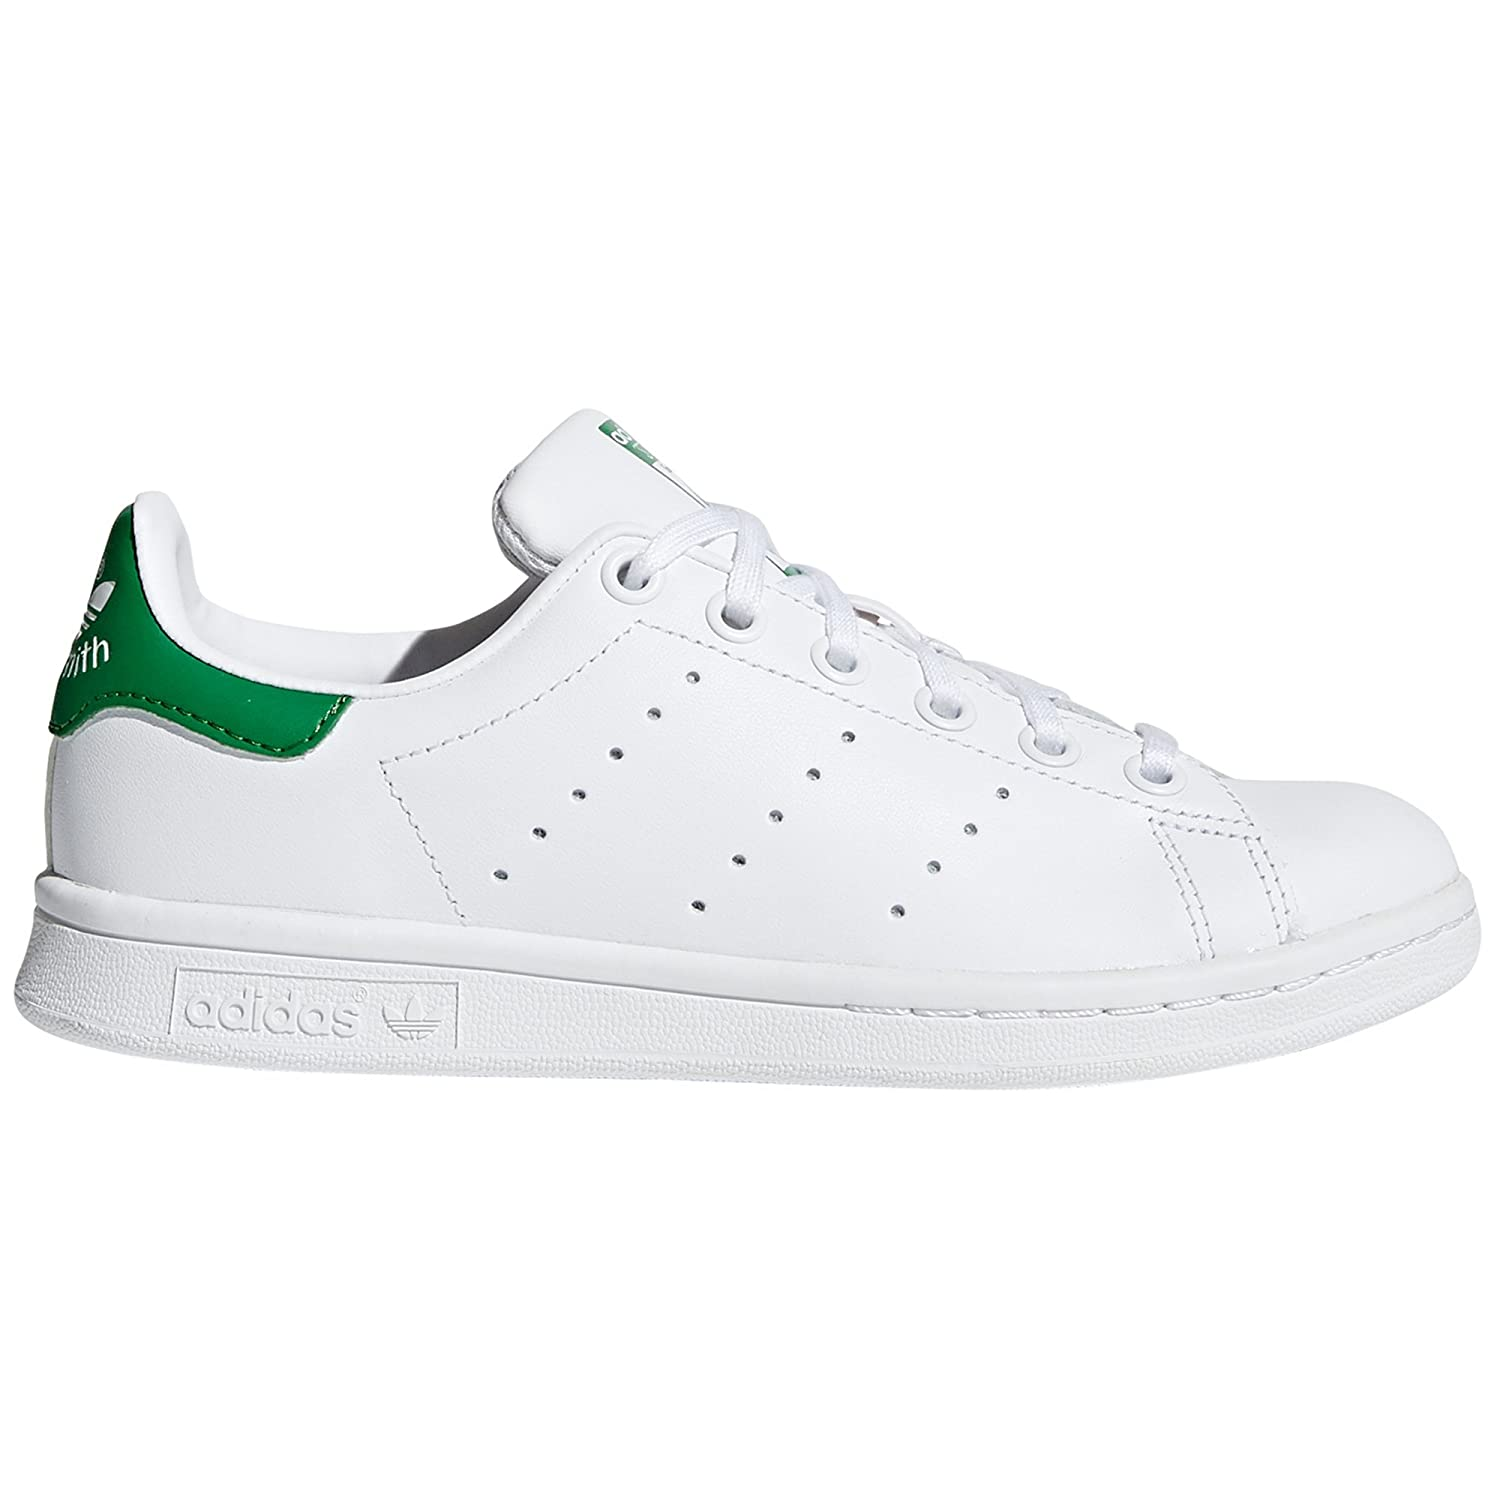 Adidas Stan Smith Weiß Schuhe Damen. Turnschuhe Low-Top Trainer